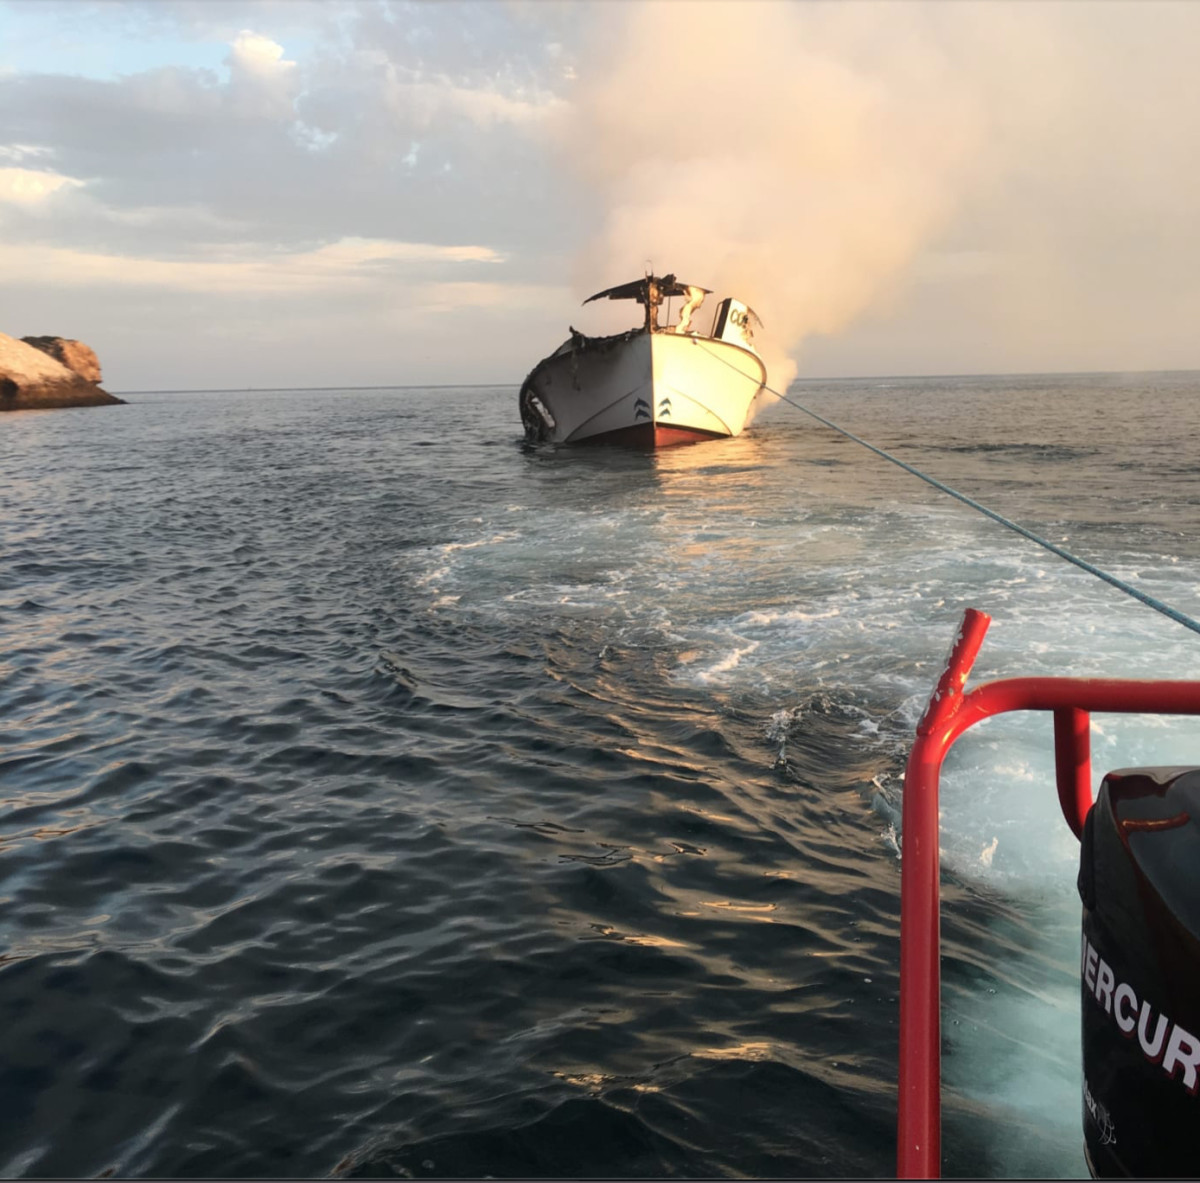 Responders initially planned to tow the boat elsewhere so workers could start the recovery phase, but the vessel quickly sunk before being recovered. Photo courtesy of Paul Amaral, an emergency responder.